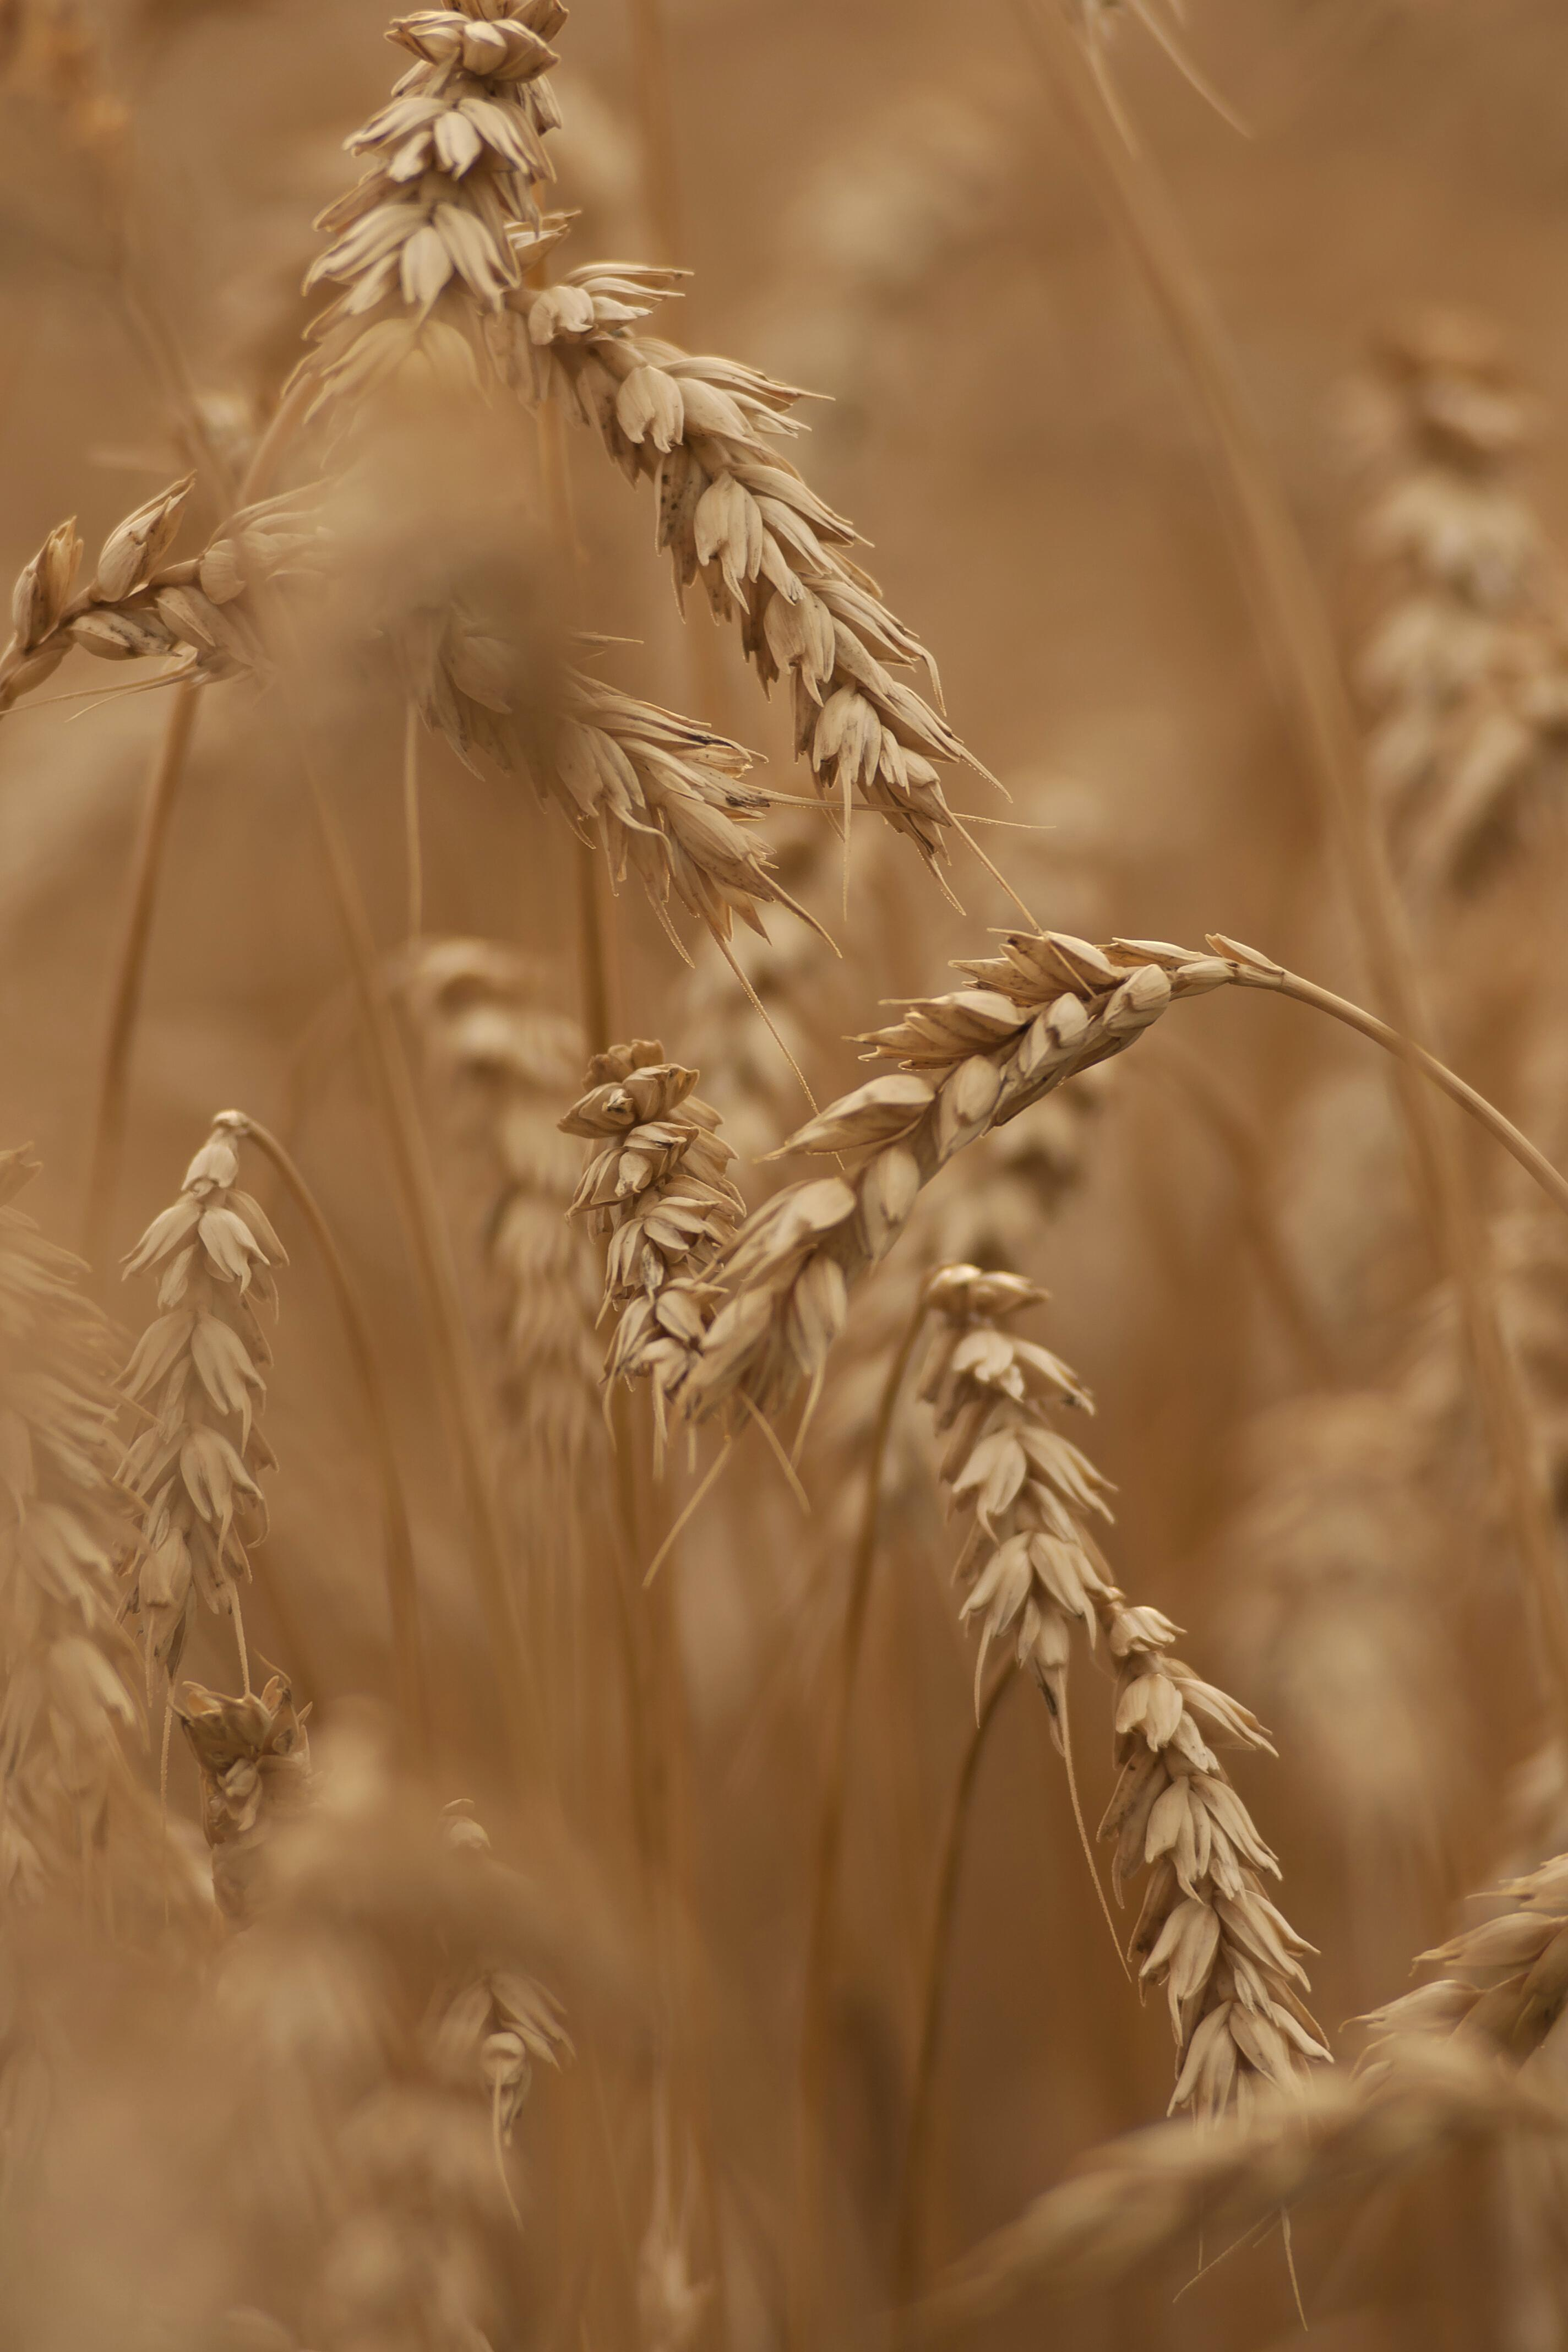 Wheat ready for the harvest.